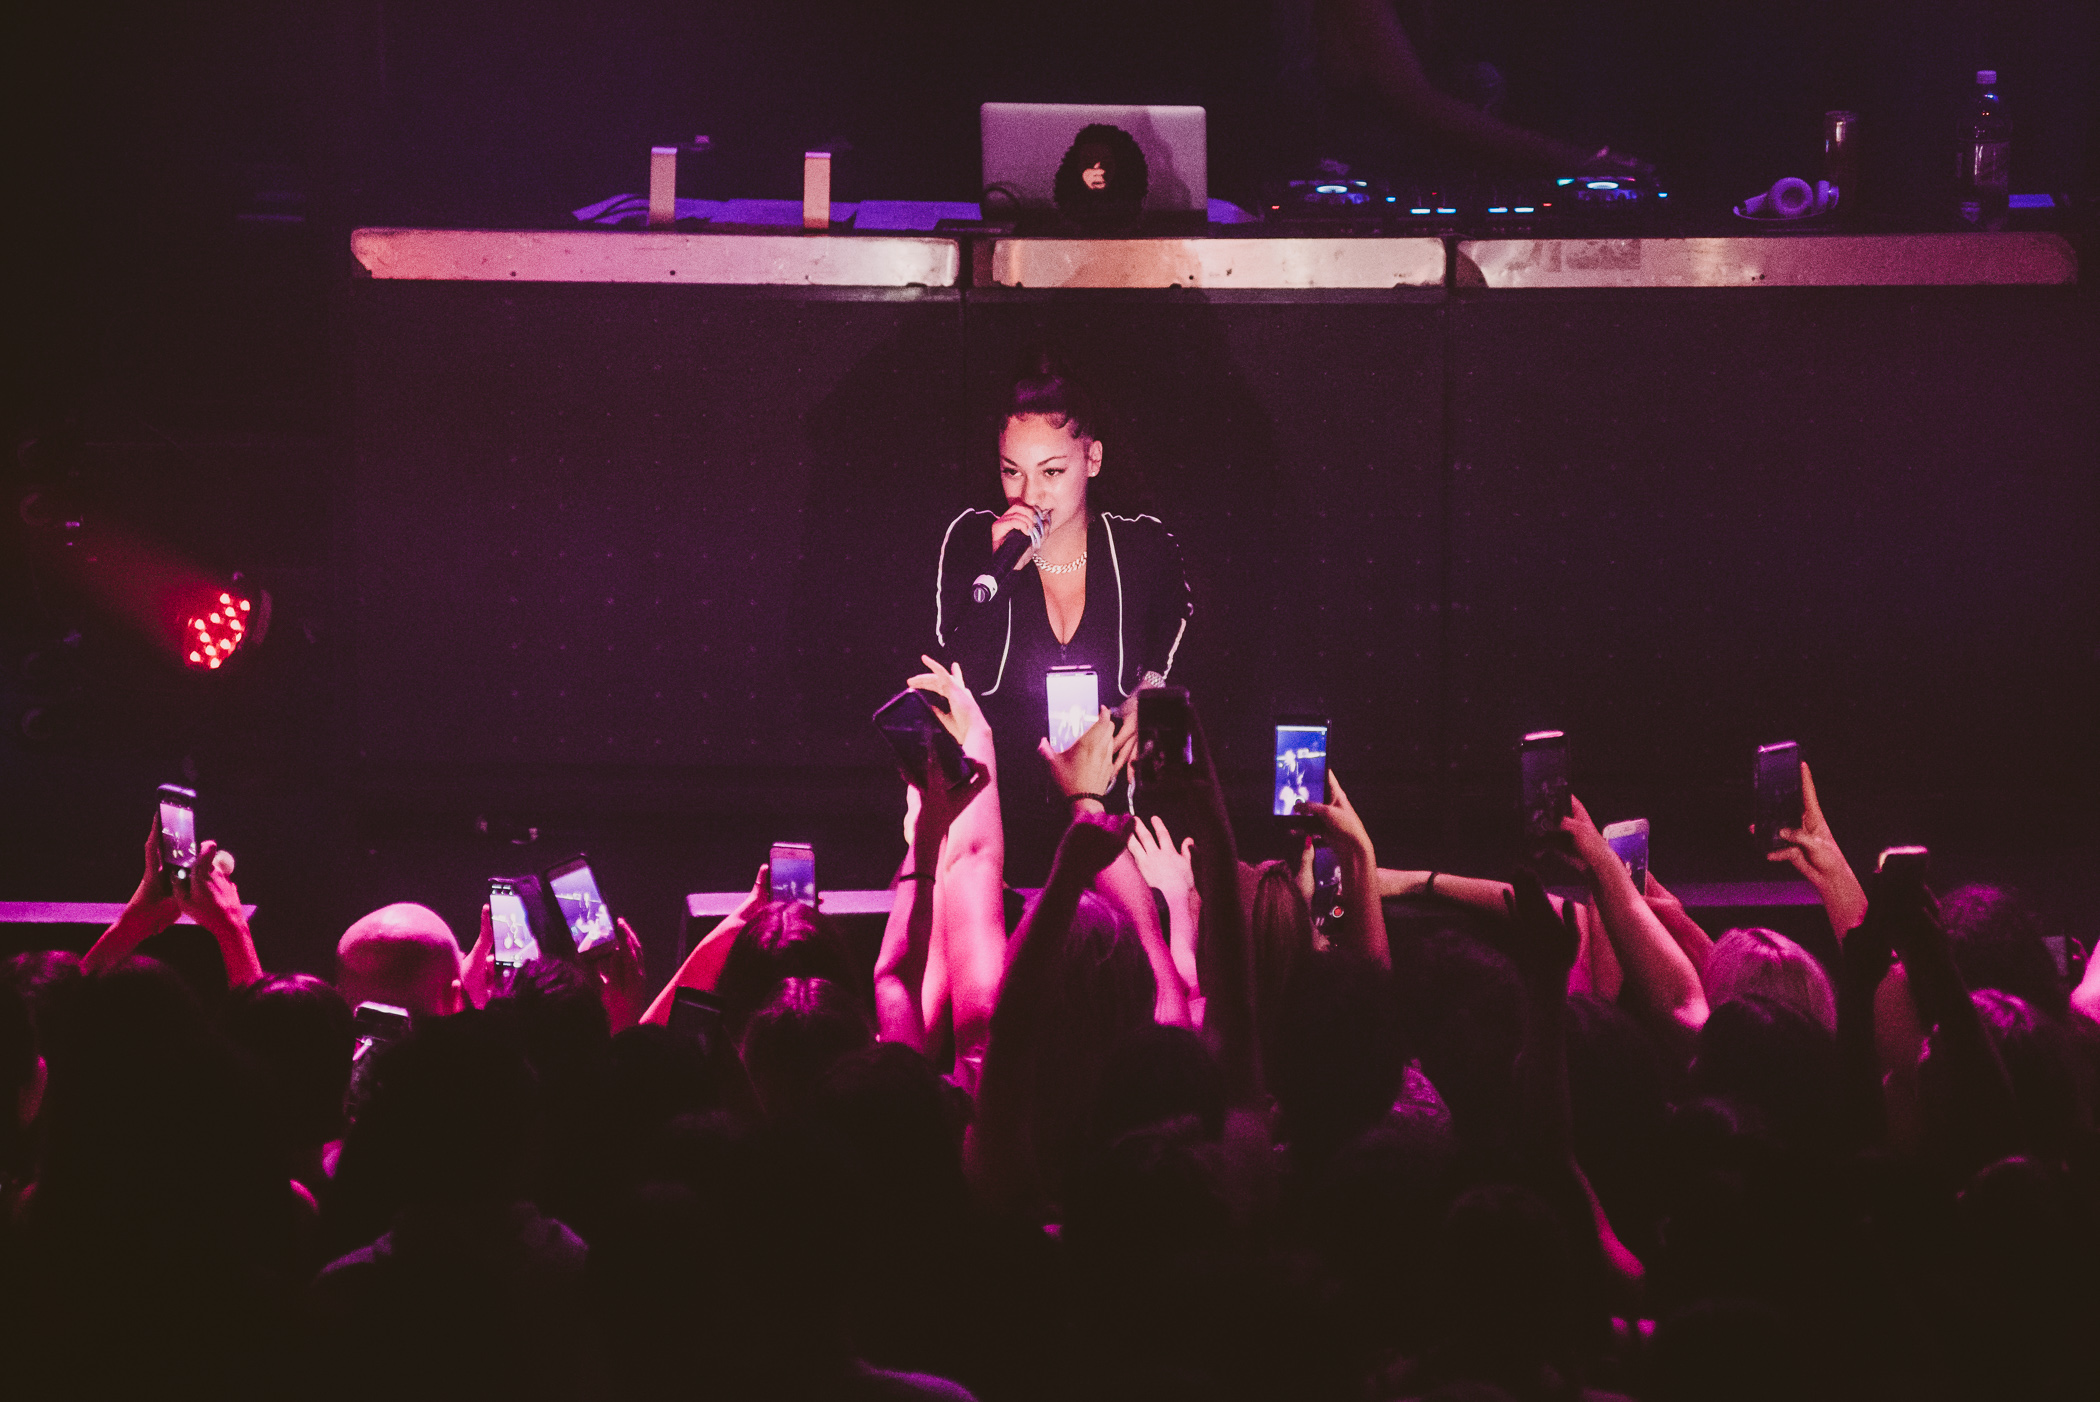 1_Bhad_Bhabie-VENUE-Timothy_Nguyen-20190510 (33 of 45).JPG